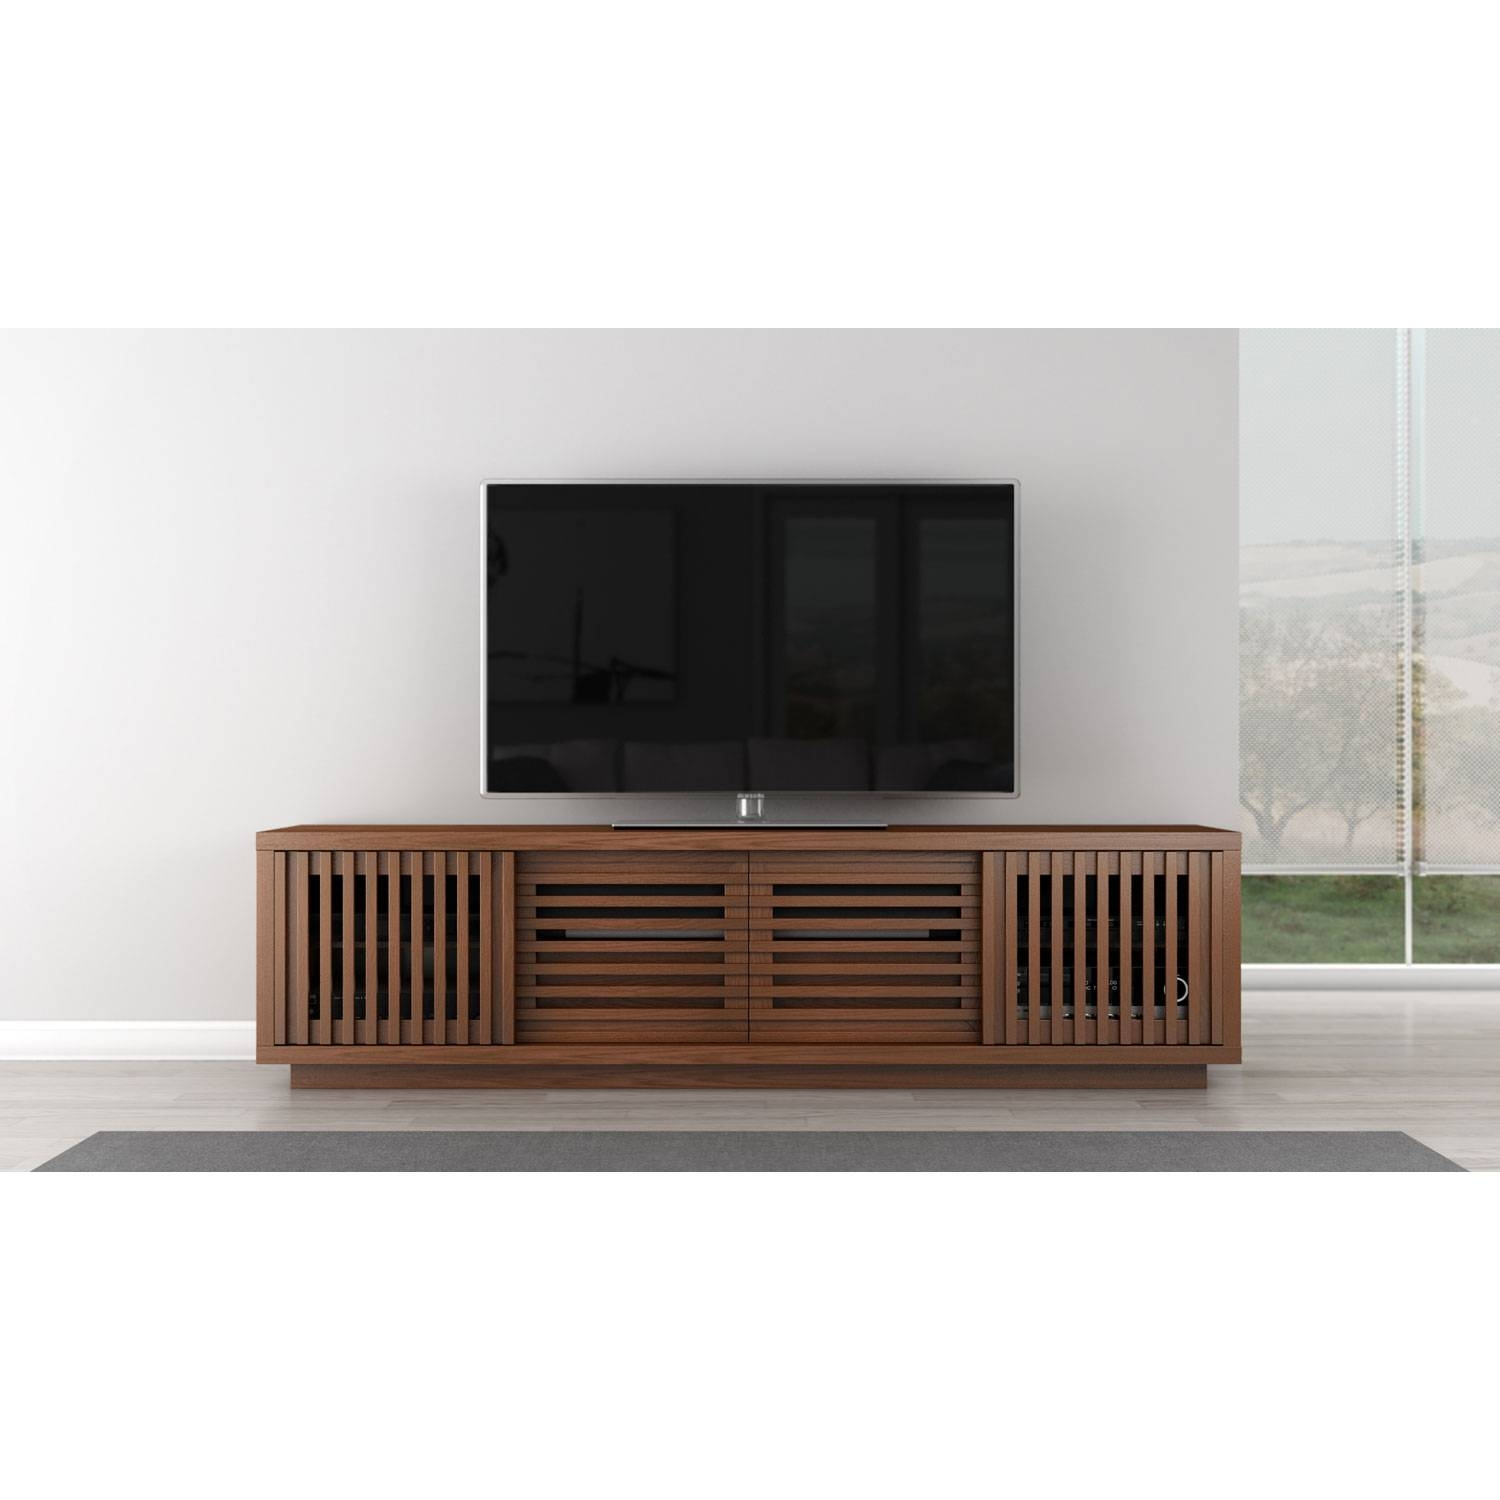 Signature Contemporary Rustic 82 Inch Warm Honey Finished White with Honey Oak Tv Stands (Image 1 of 15)